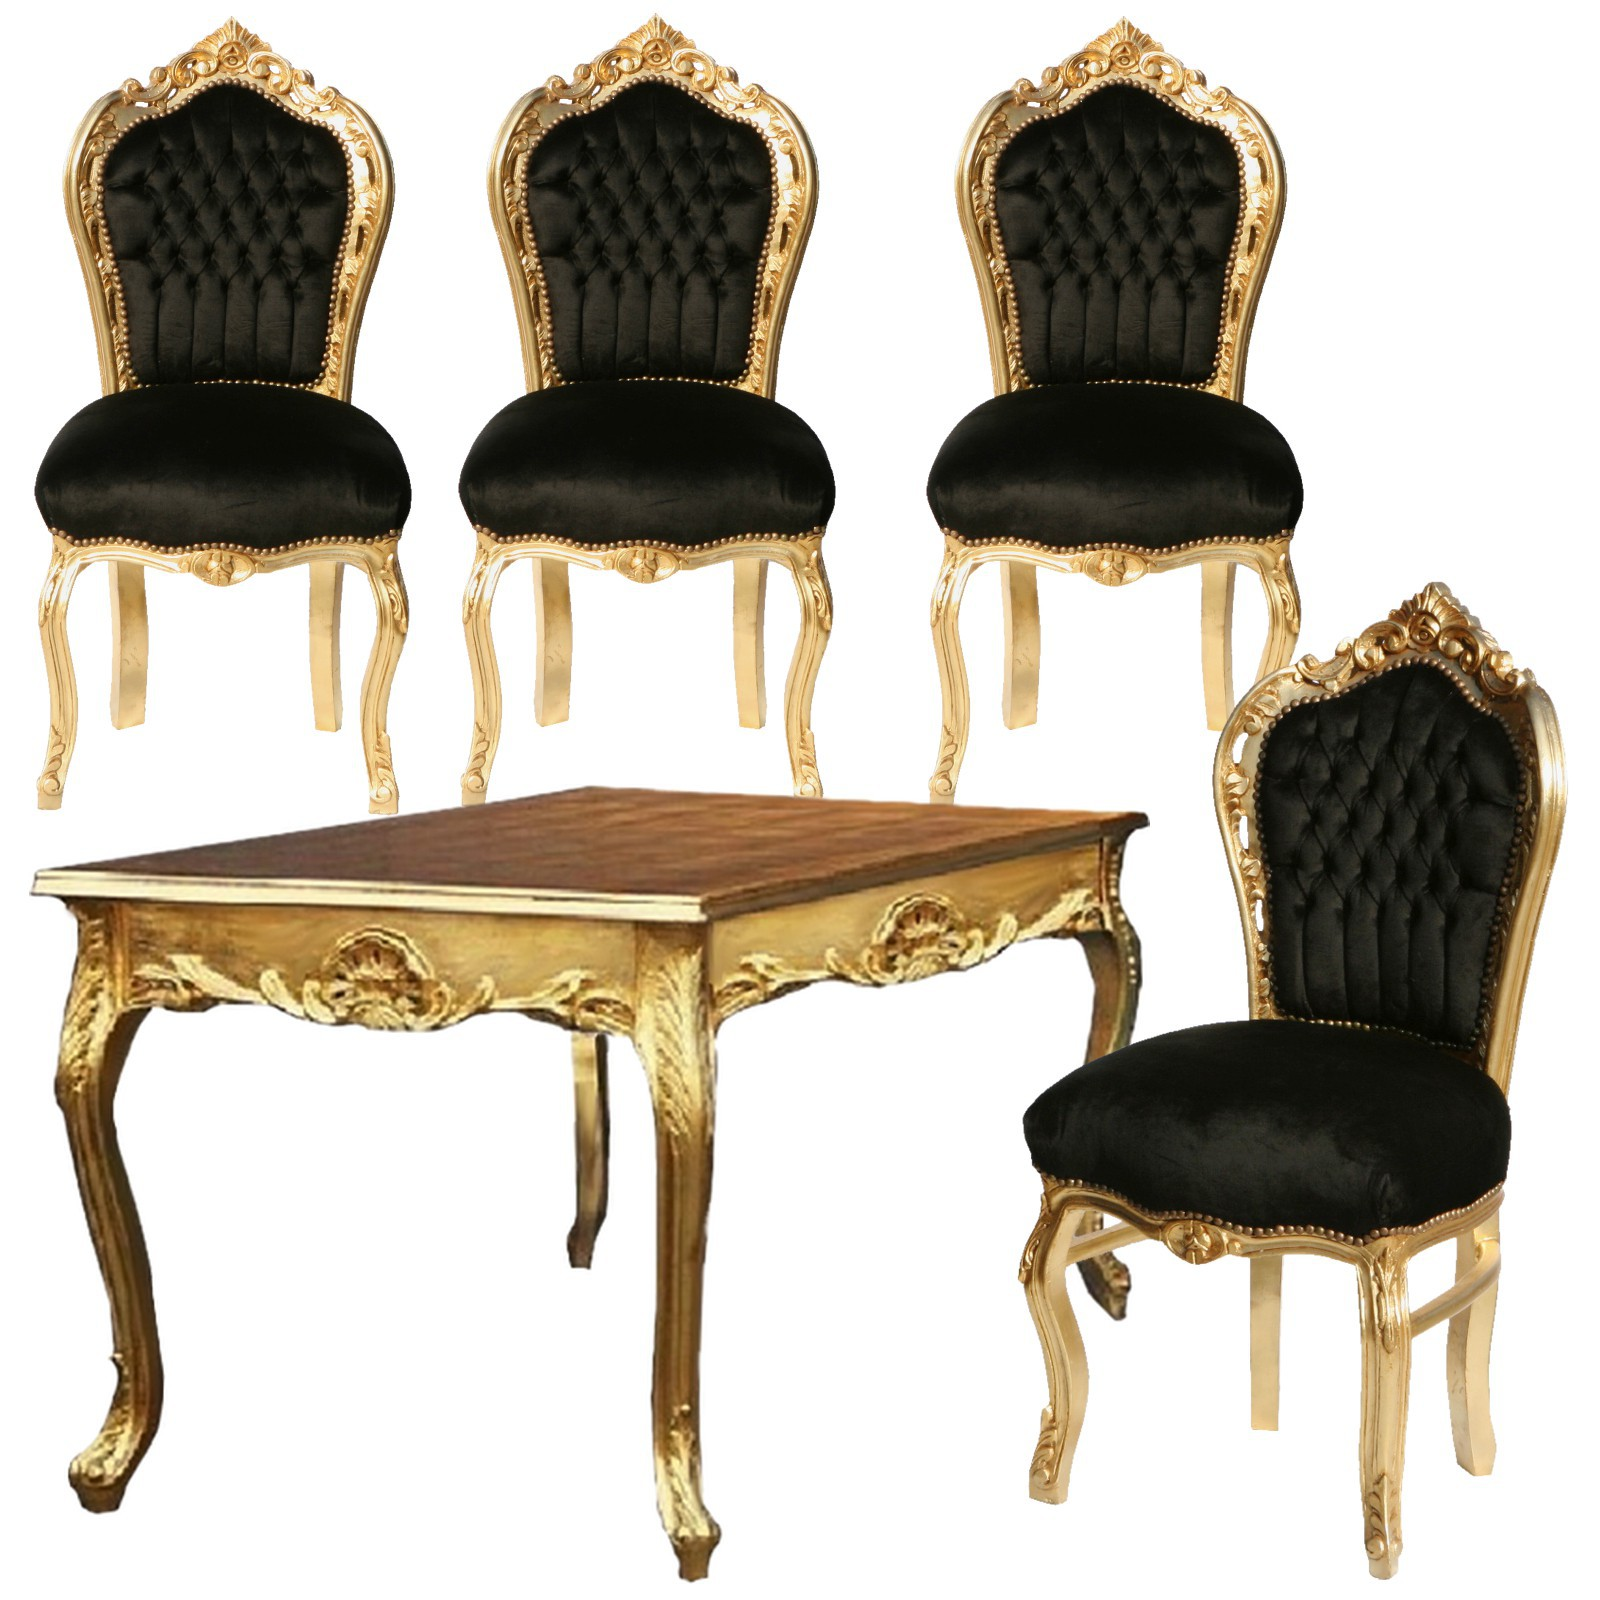 k chentisch st hle set angebot barockm bel schwarz barock design mit tisch gold. Black Bedroom Furniture Sets. Home Design Ideas